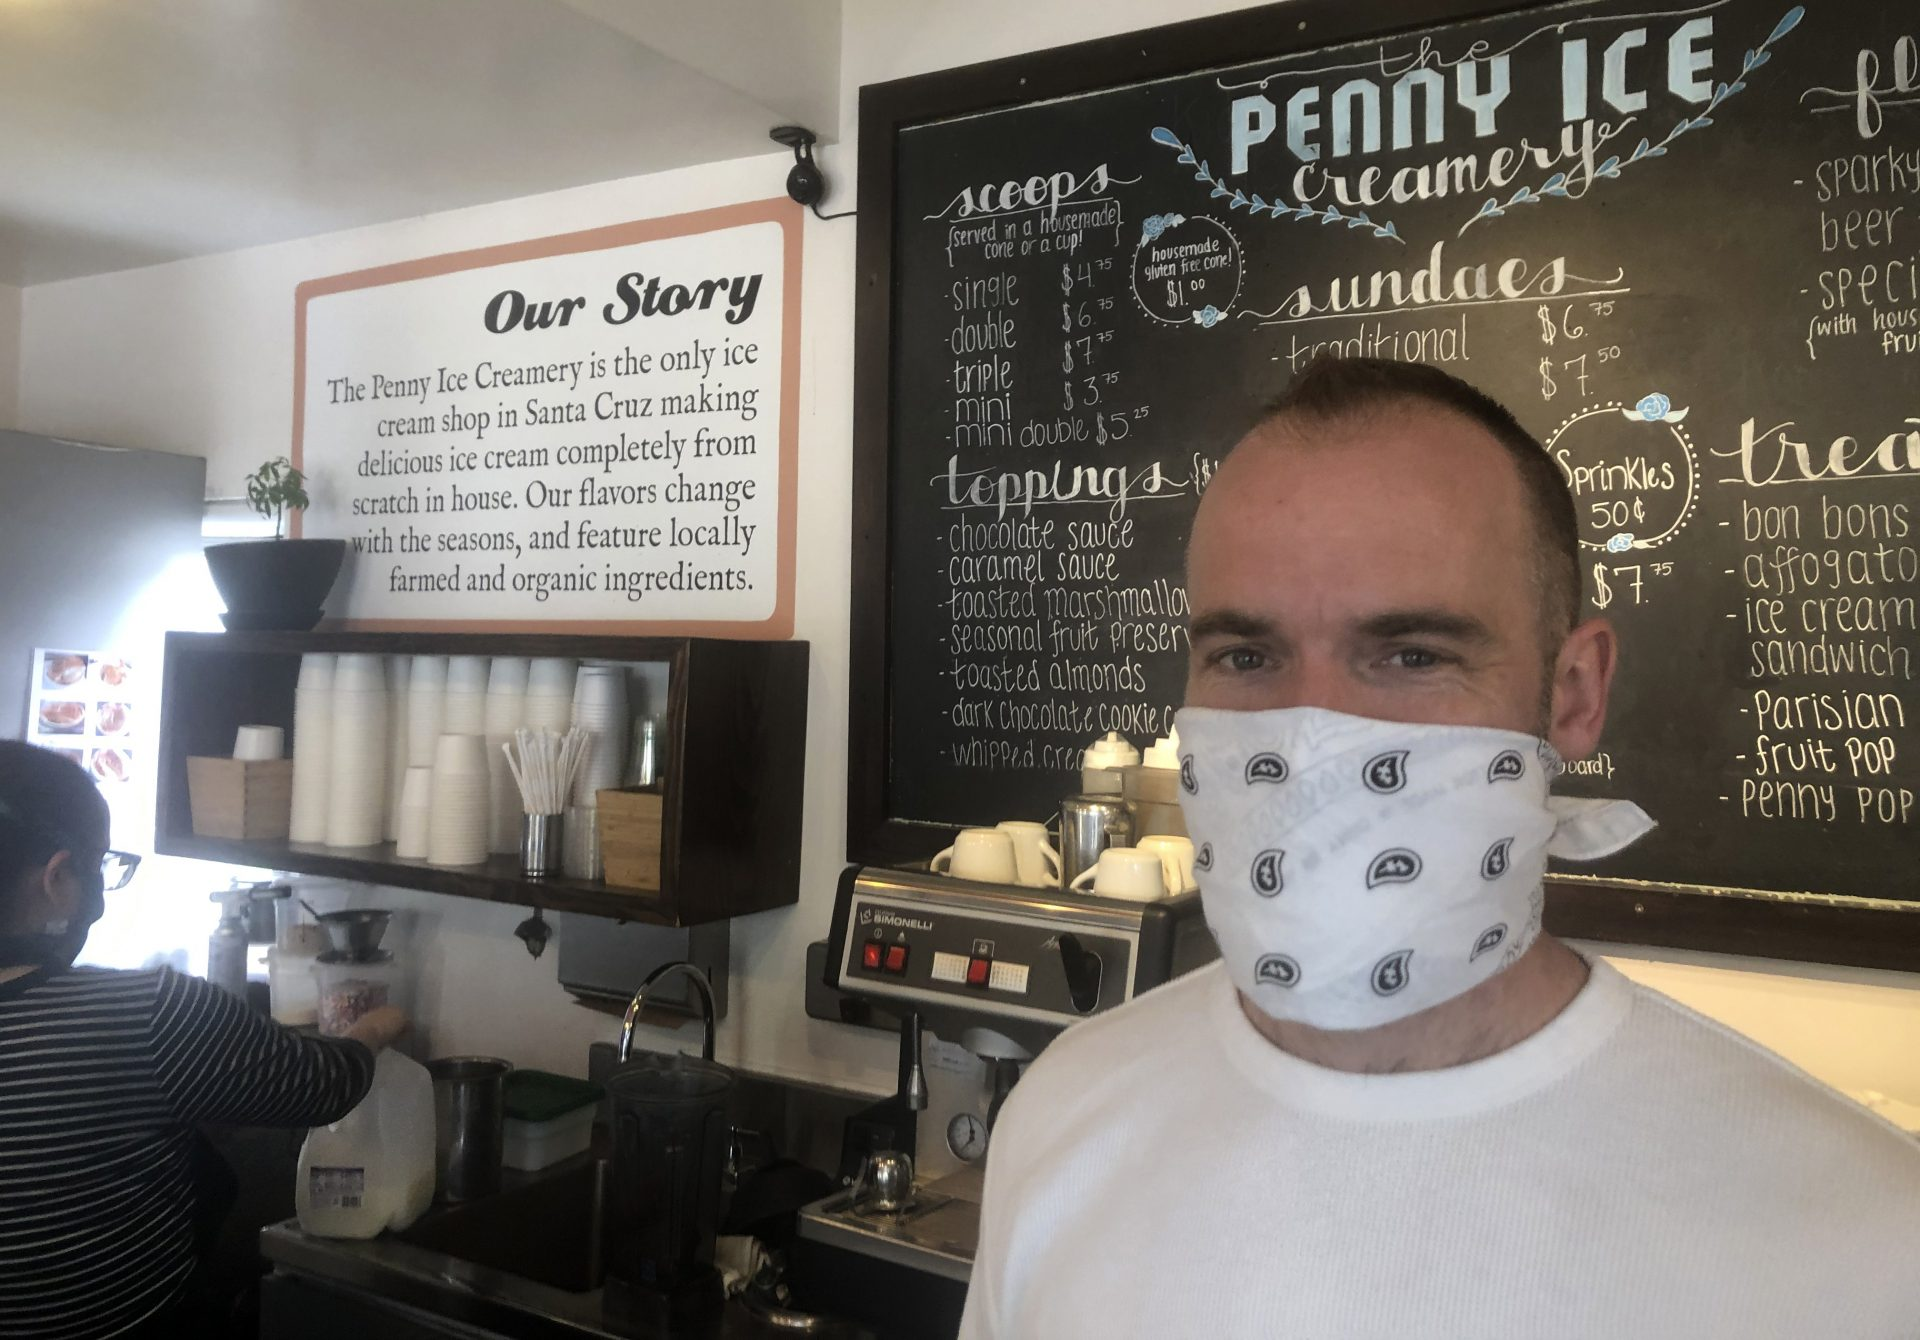 "In this April 17, 2020, photo, Zachary Davis poses for a photo at The Penny Ice Creamery in Santa Cruz, Calif. An investigation by The Associated Press hows that many large companies which collectively received tens of millions of dollars in federal loans through the Paycheck Protection Program were at risk of failing even before the coronavirus walloped the economy, while others have acknowledged problems keeping their finances straight and a few have been under investigation by the Securities and Exchange Commission. That big companies and ones with questionable records received such precious financial aid during the chaotic last few weeks frustrates Davis, ""We were feeling pretty good about where we were in the world. Now it's just all turned upside down,"" said Davis, who had to lay off 70 workers."